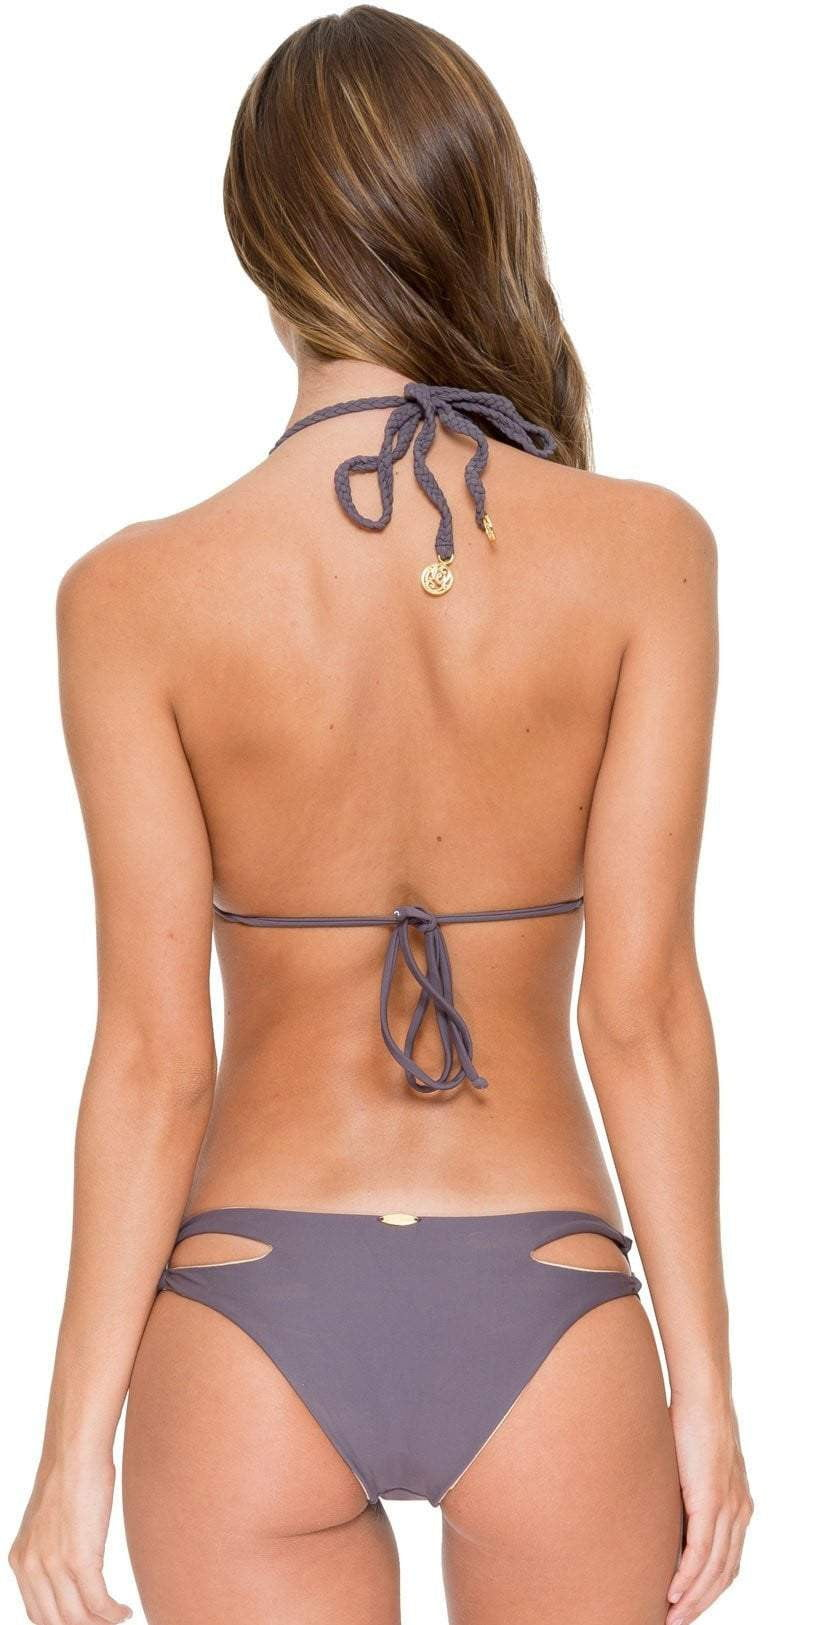 Luli Fama Cosita Buena Open Side Bottom in Piedra Gris L176551-441: